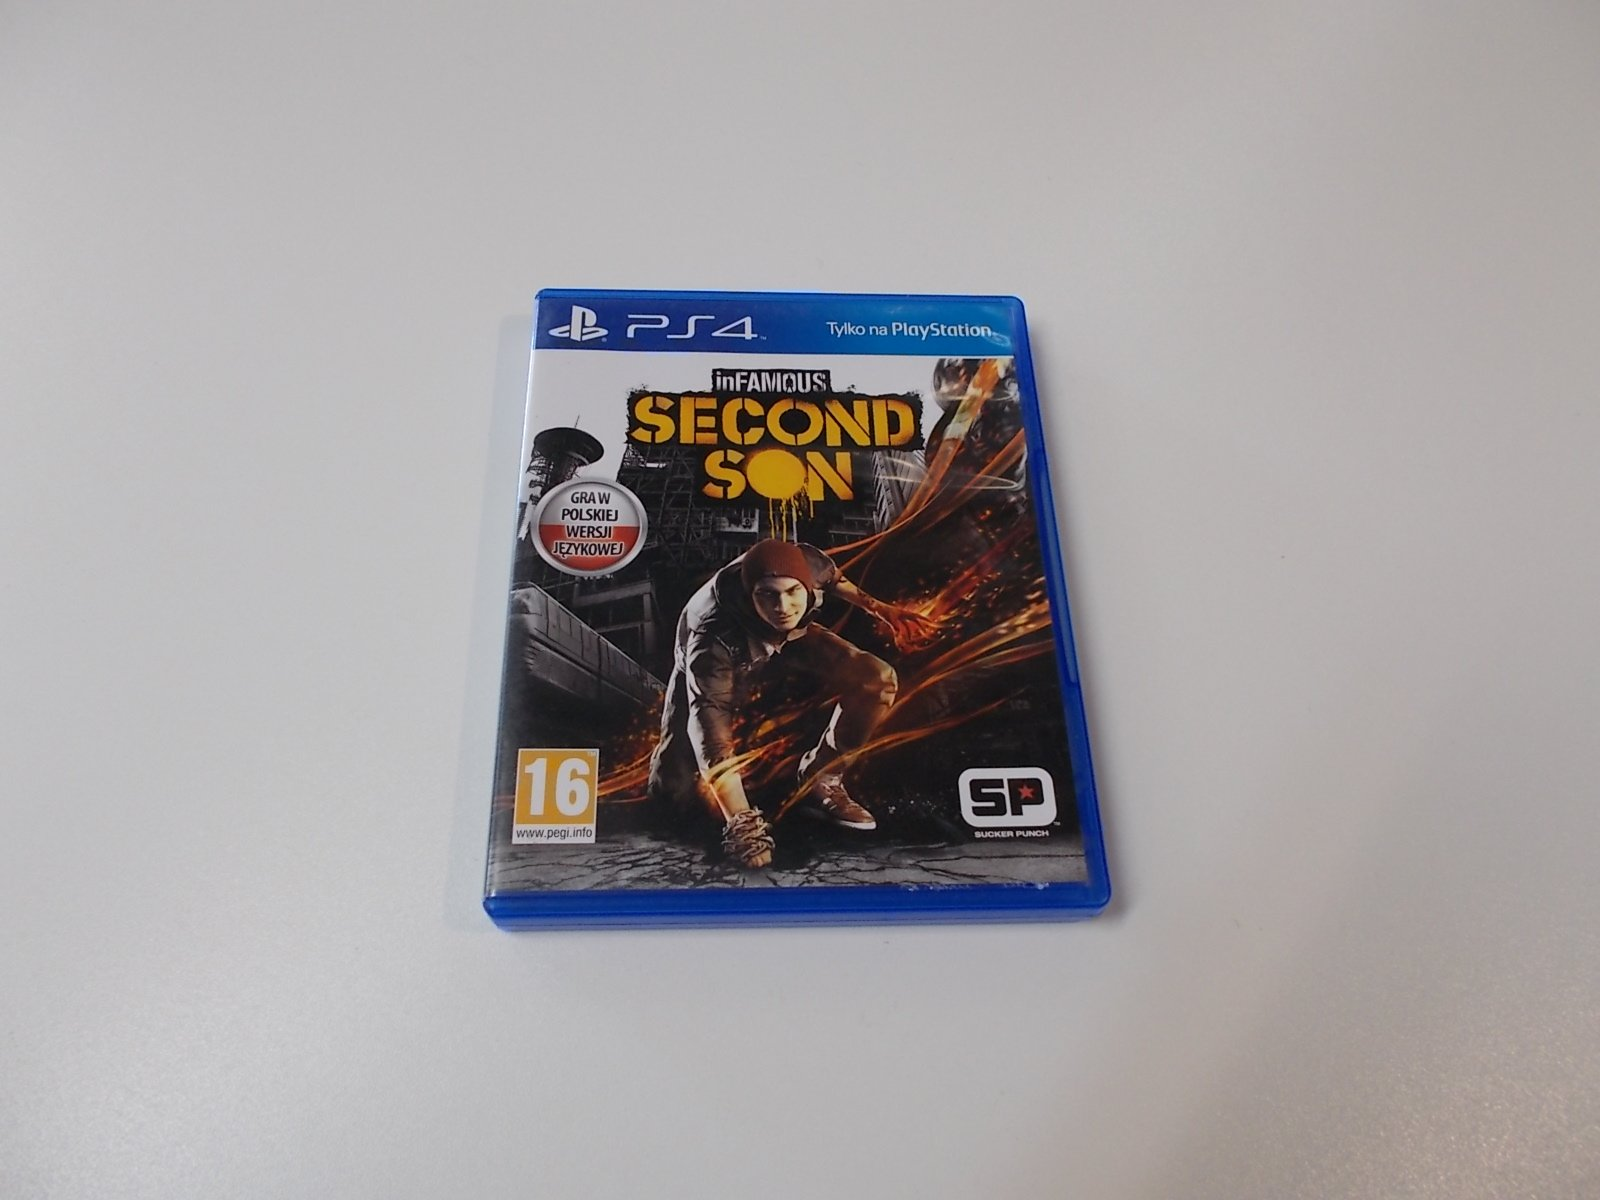 Infamous Second Son - GRA Ps4 - Opole 0453